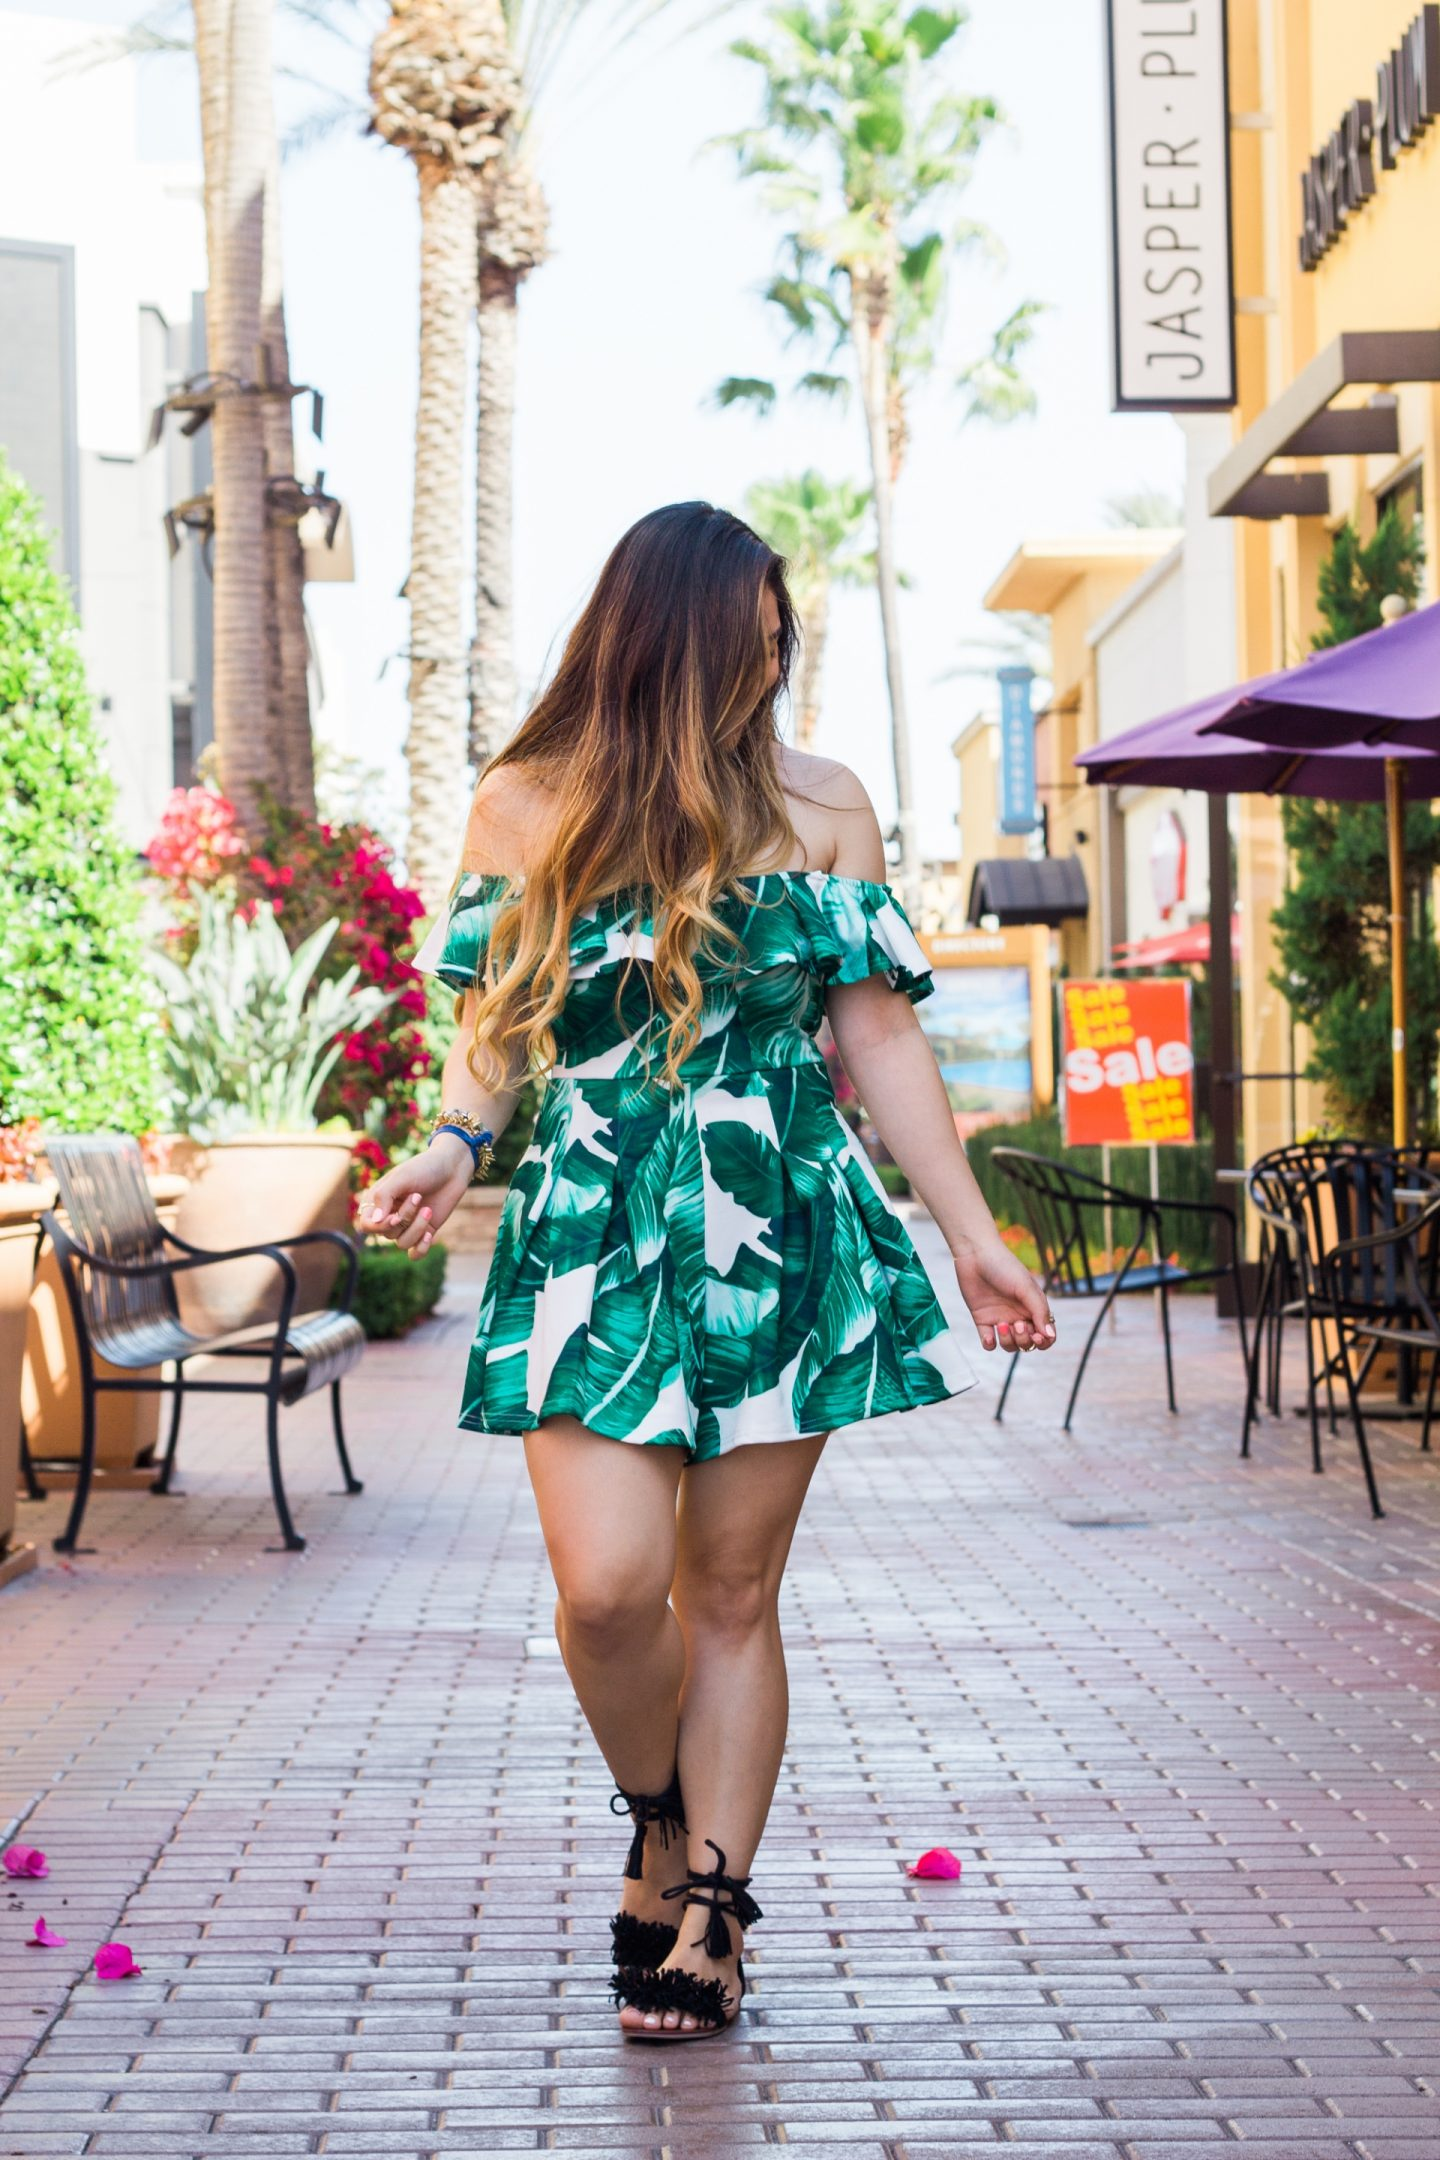 Affordable Palm Print Outfits Under $25